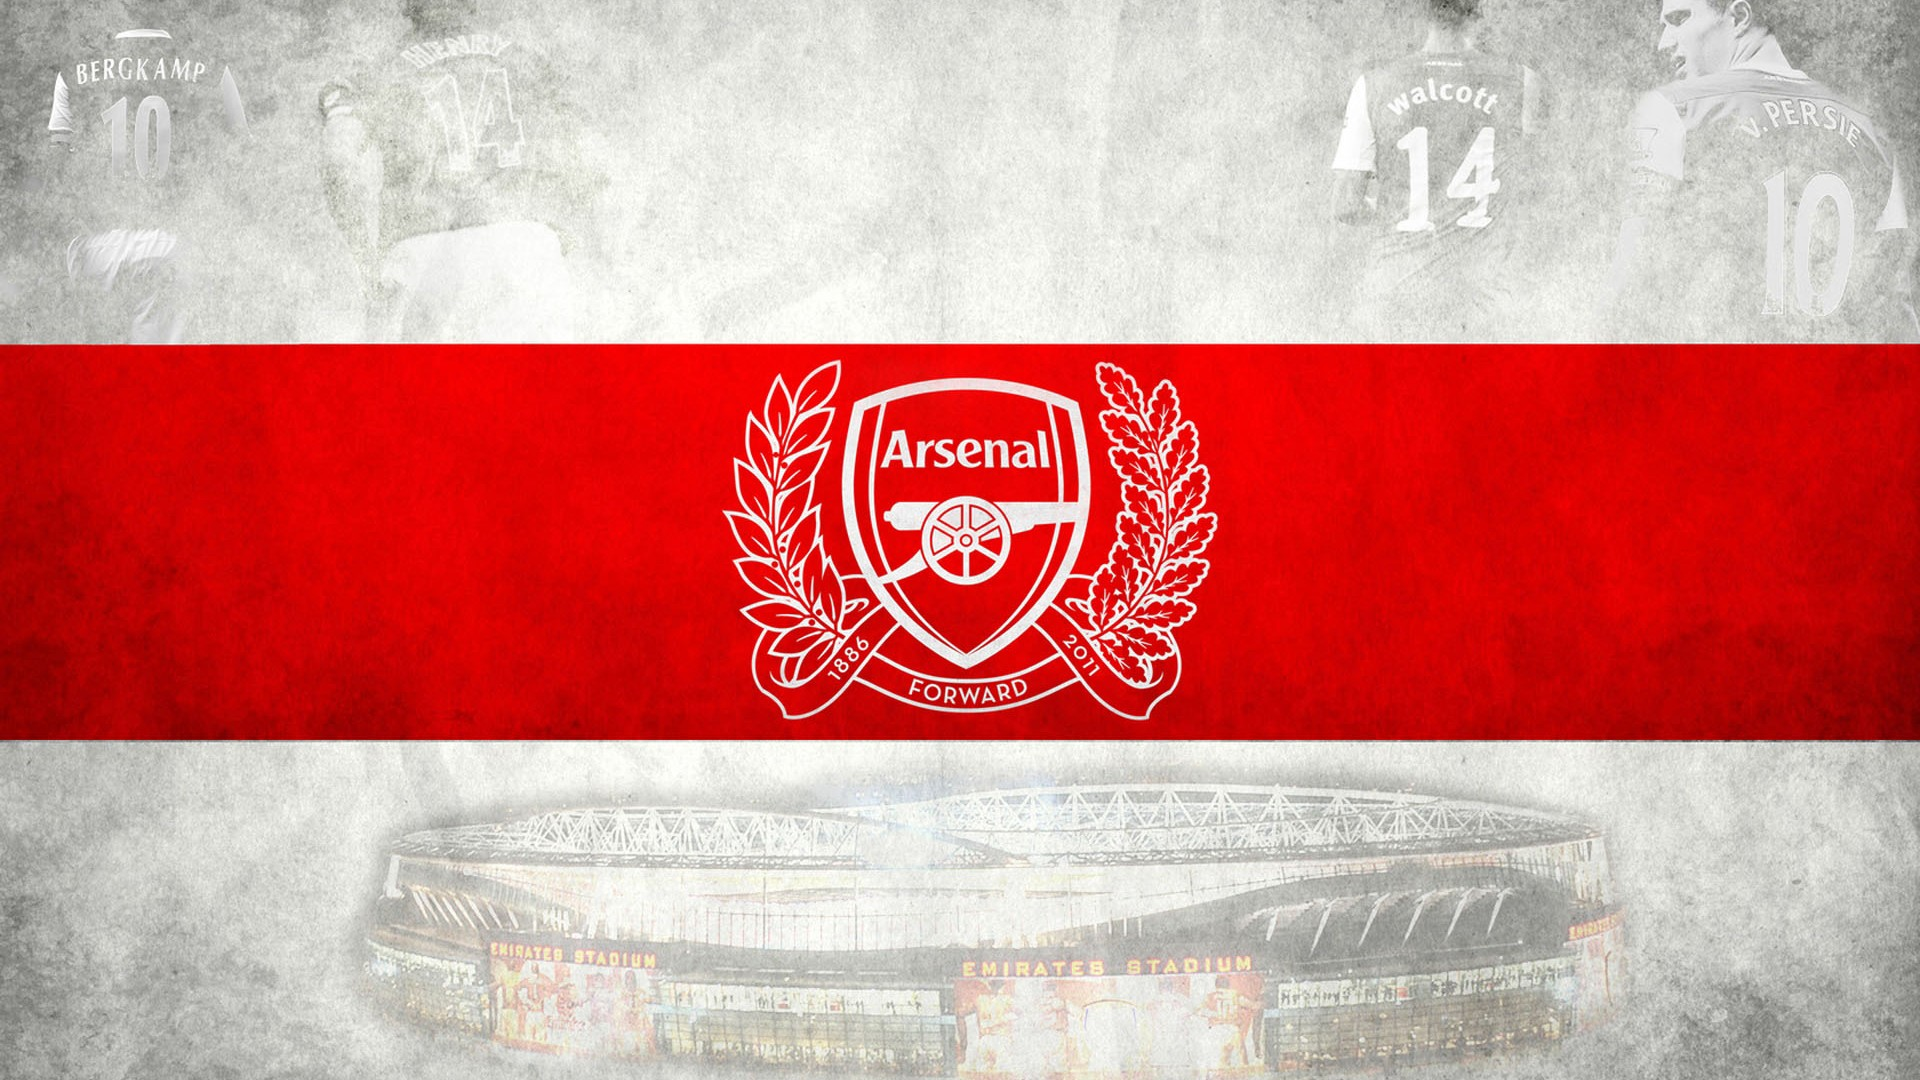 arsenal fc wallpaper 1920x1080 73232